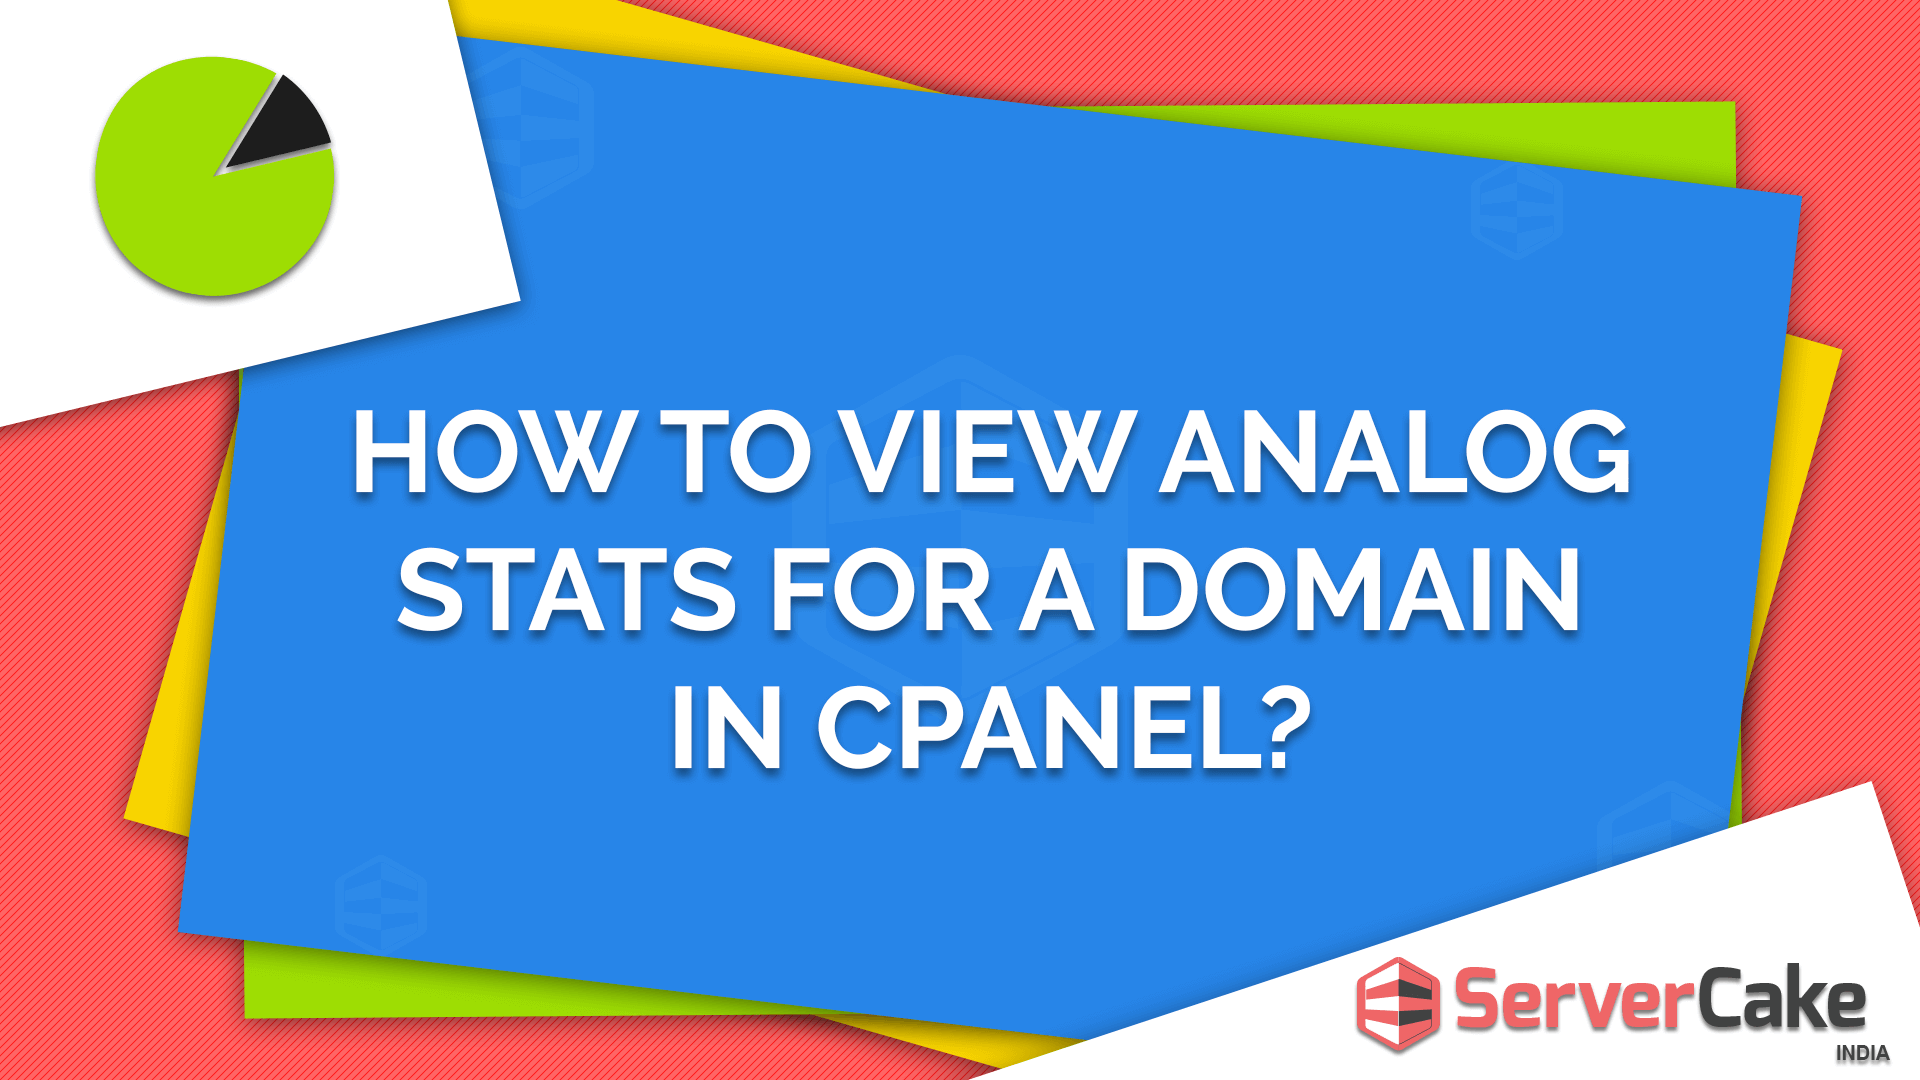 View Analog Stats for a domain in cPanel